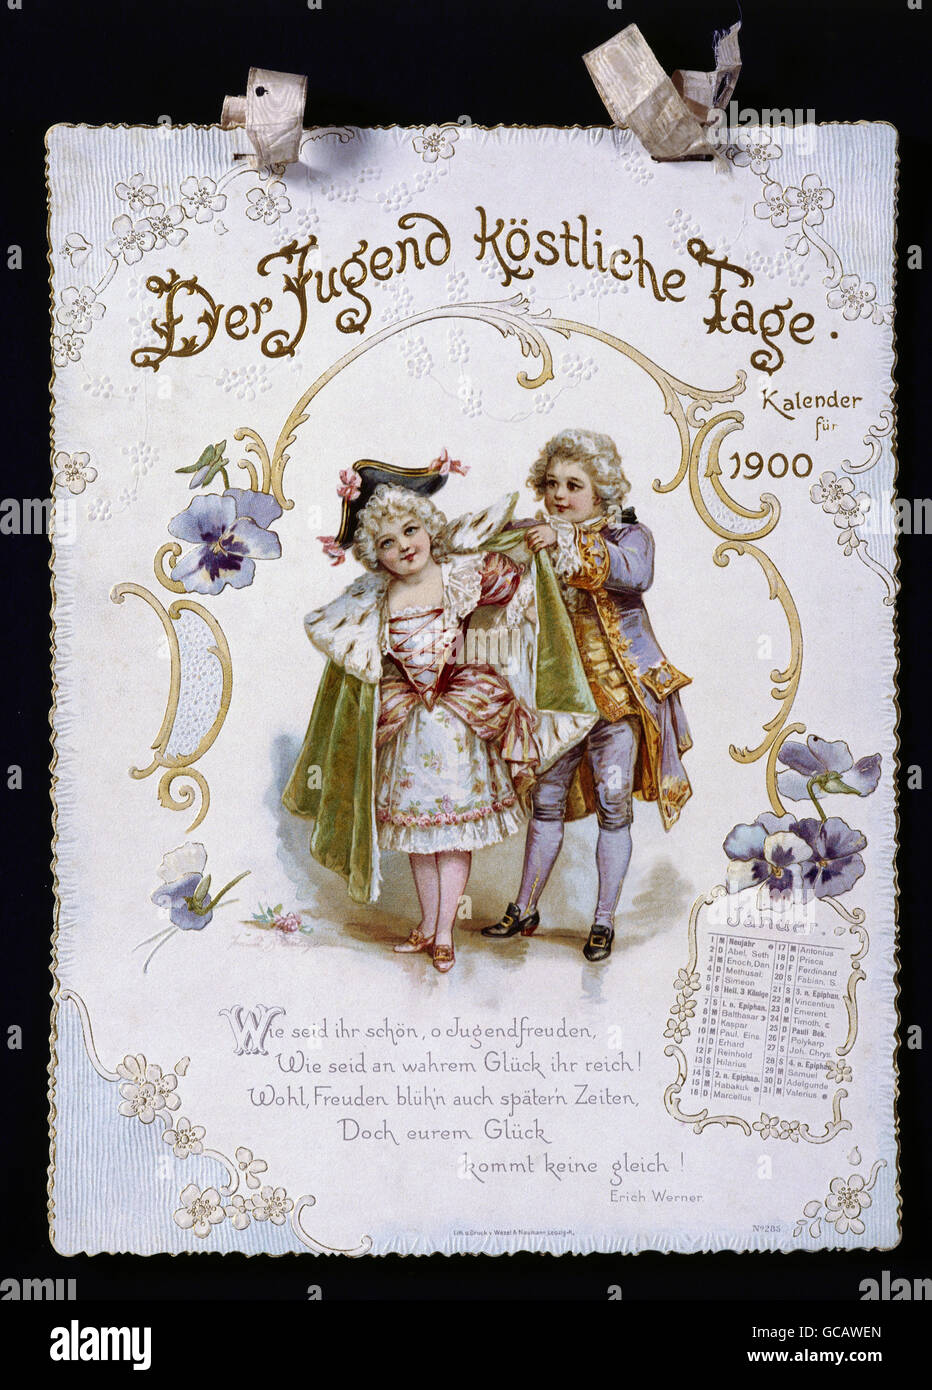 calendar, page, 'Der Jugend köstliche Tage' ('Delightful, Days of Youth'), colour lithograph, - Stock Image